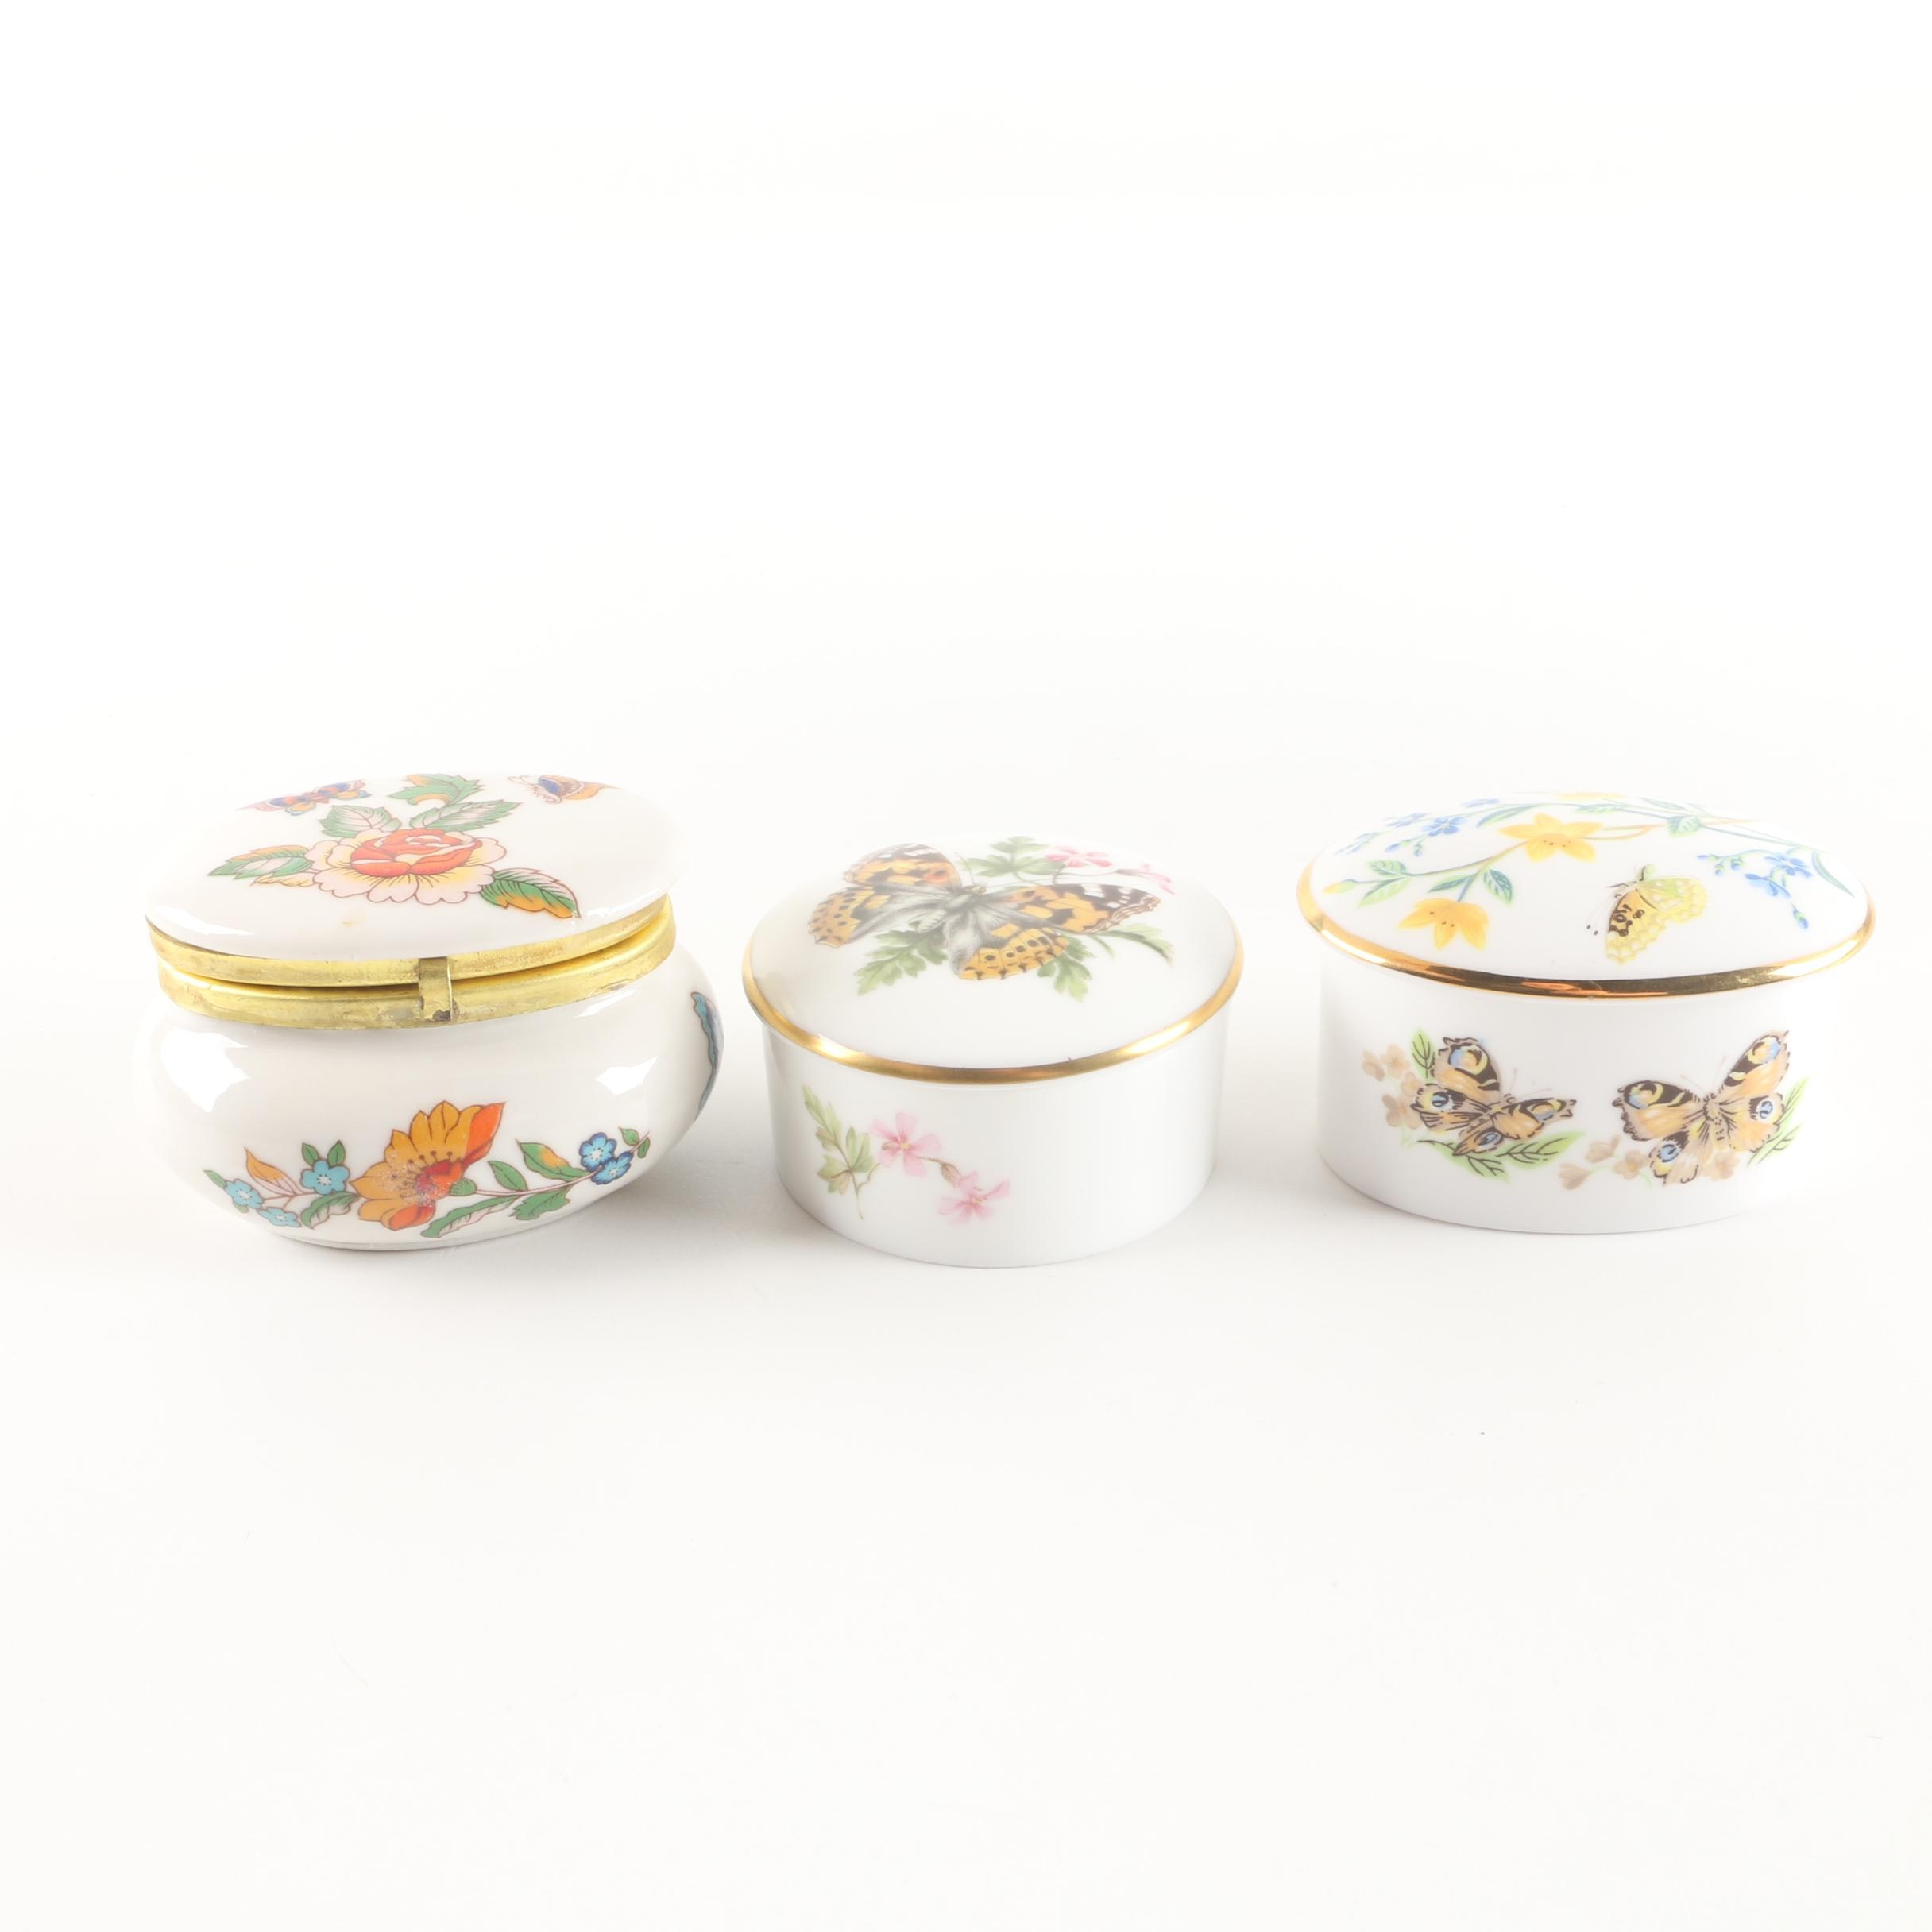 Porcelain Butterfly Themed Trinket Boxes Featuring Royal Worcester and More